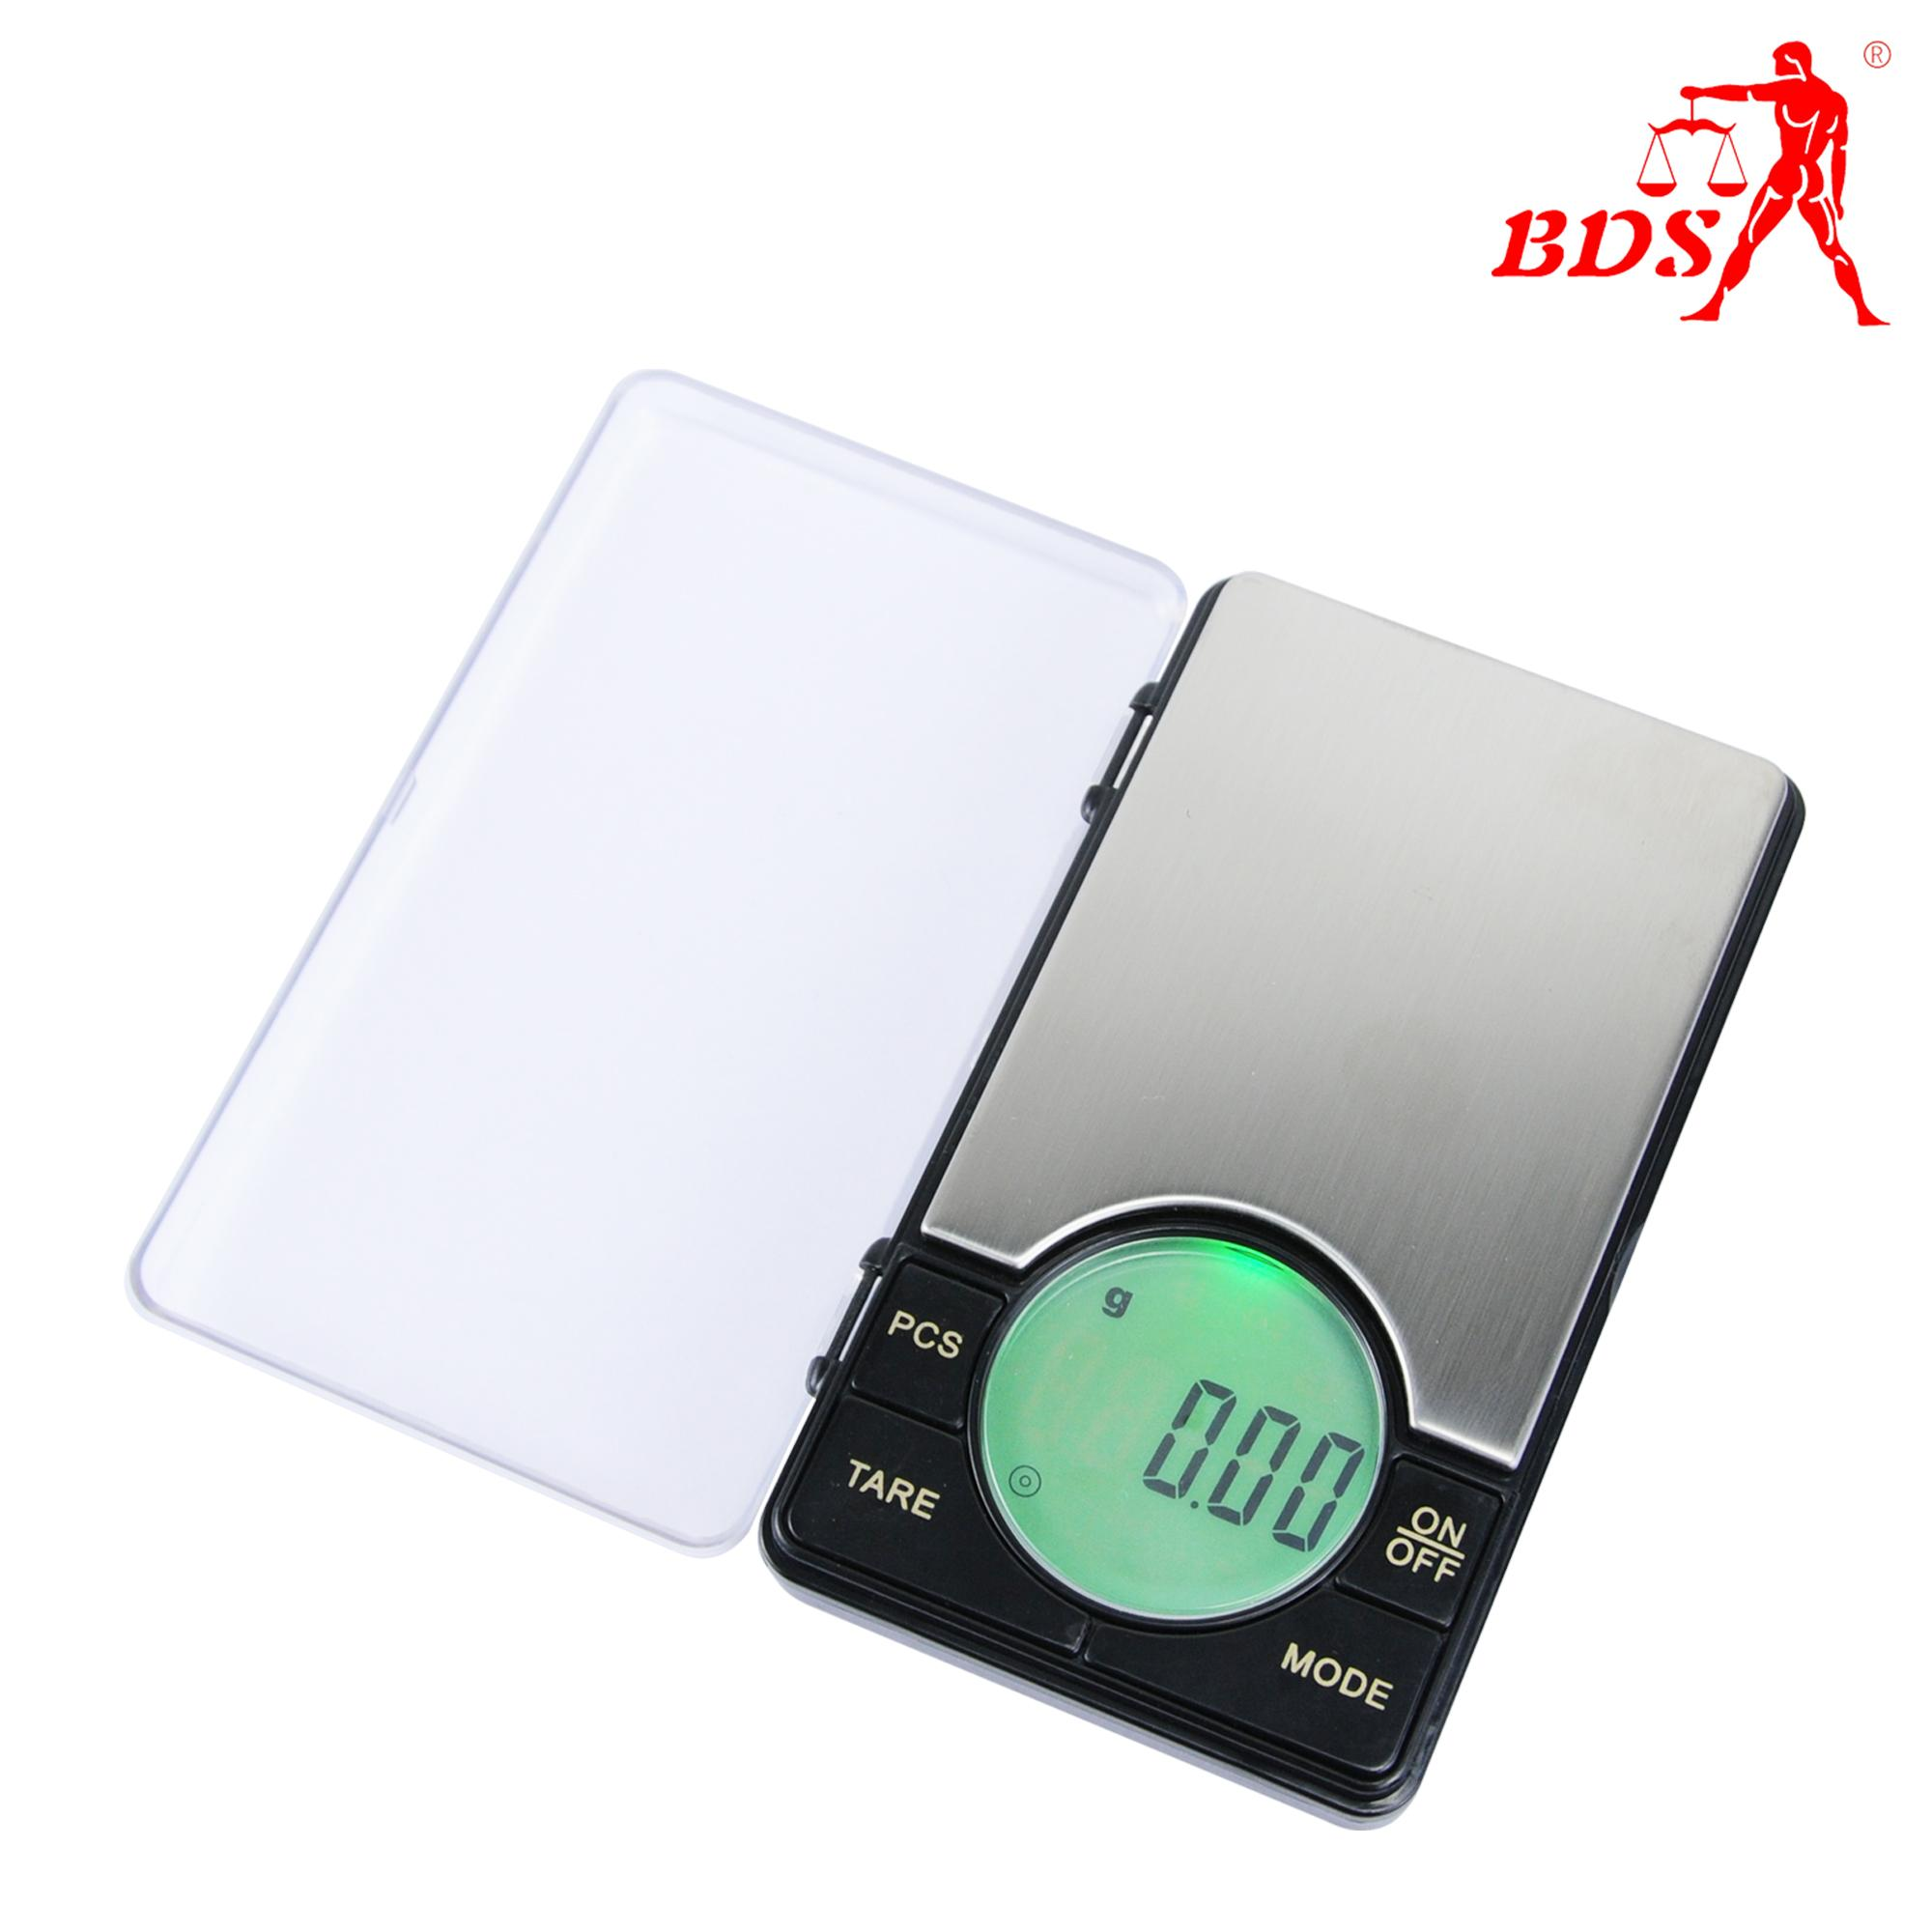 BDS ES jewelry pocket scale palm scale electronic scale manufacturer  2